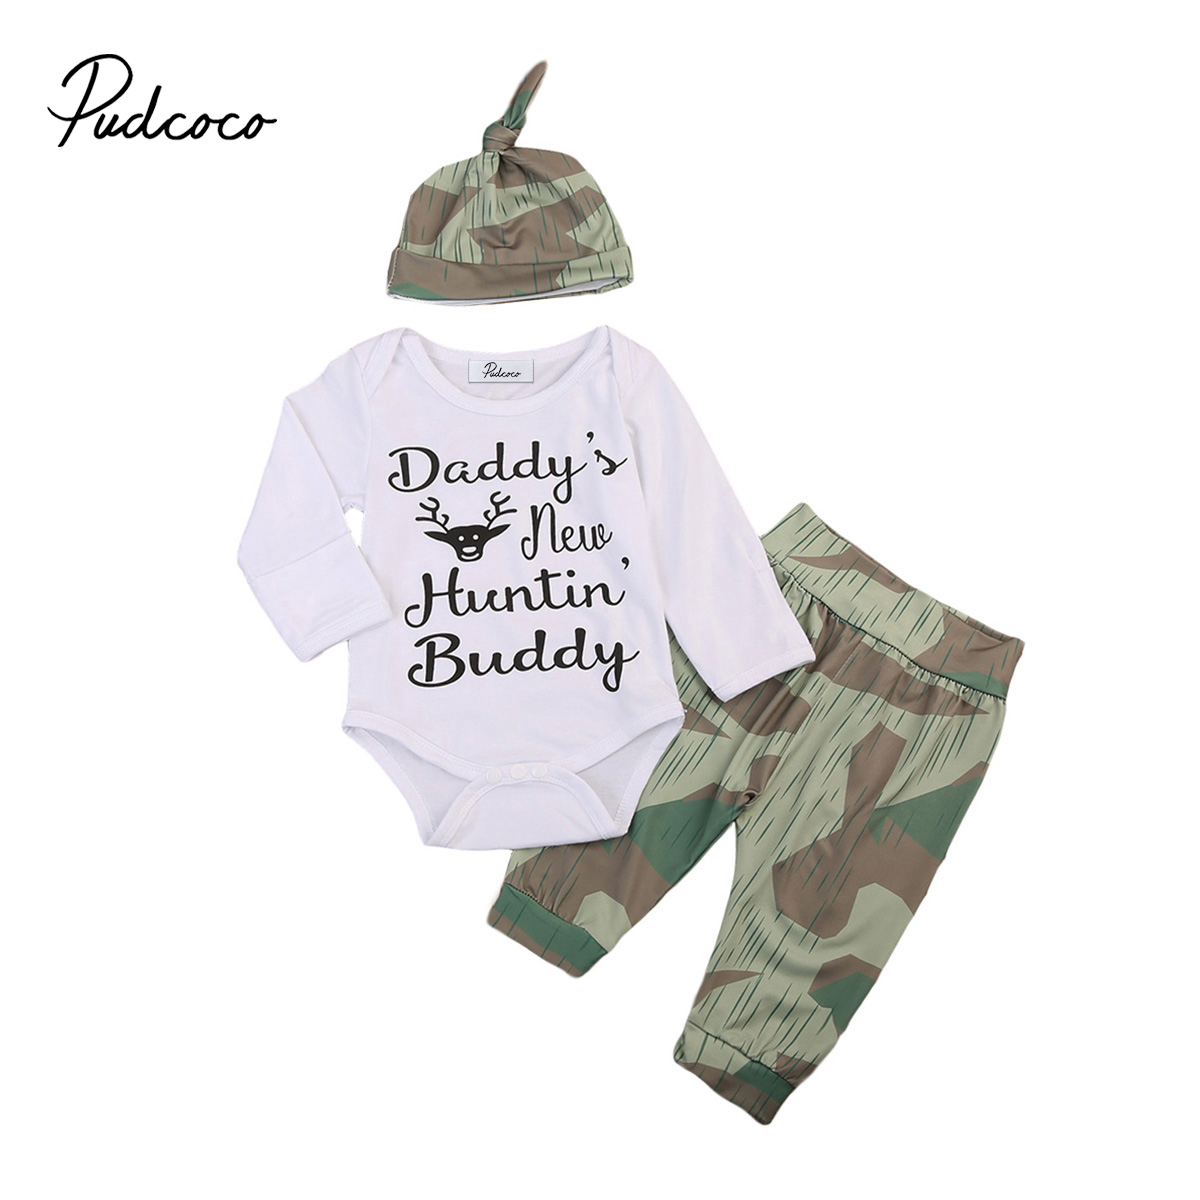 Pudcoco 3Pcs Toddler Newborn Baby Boys Clothes Cotton O-Neck Long Sleeve Deer Bodysuit Pants Hat Outfits Set 3-24Months Helen115